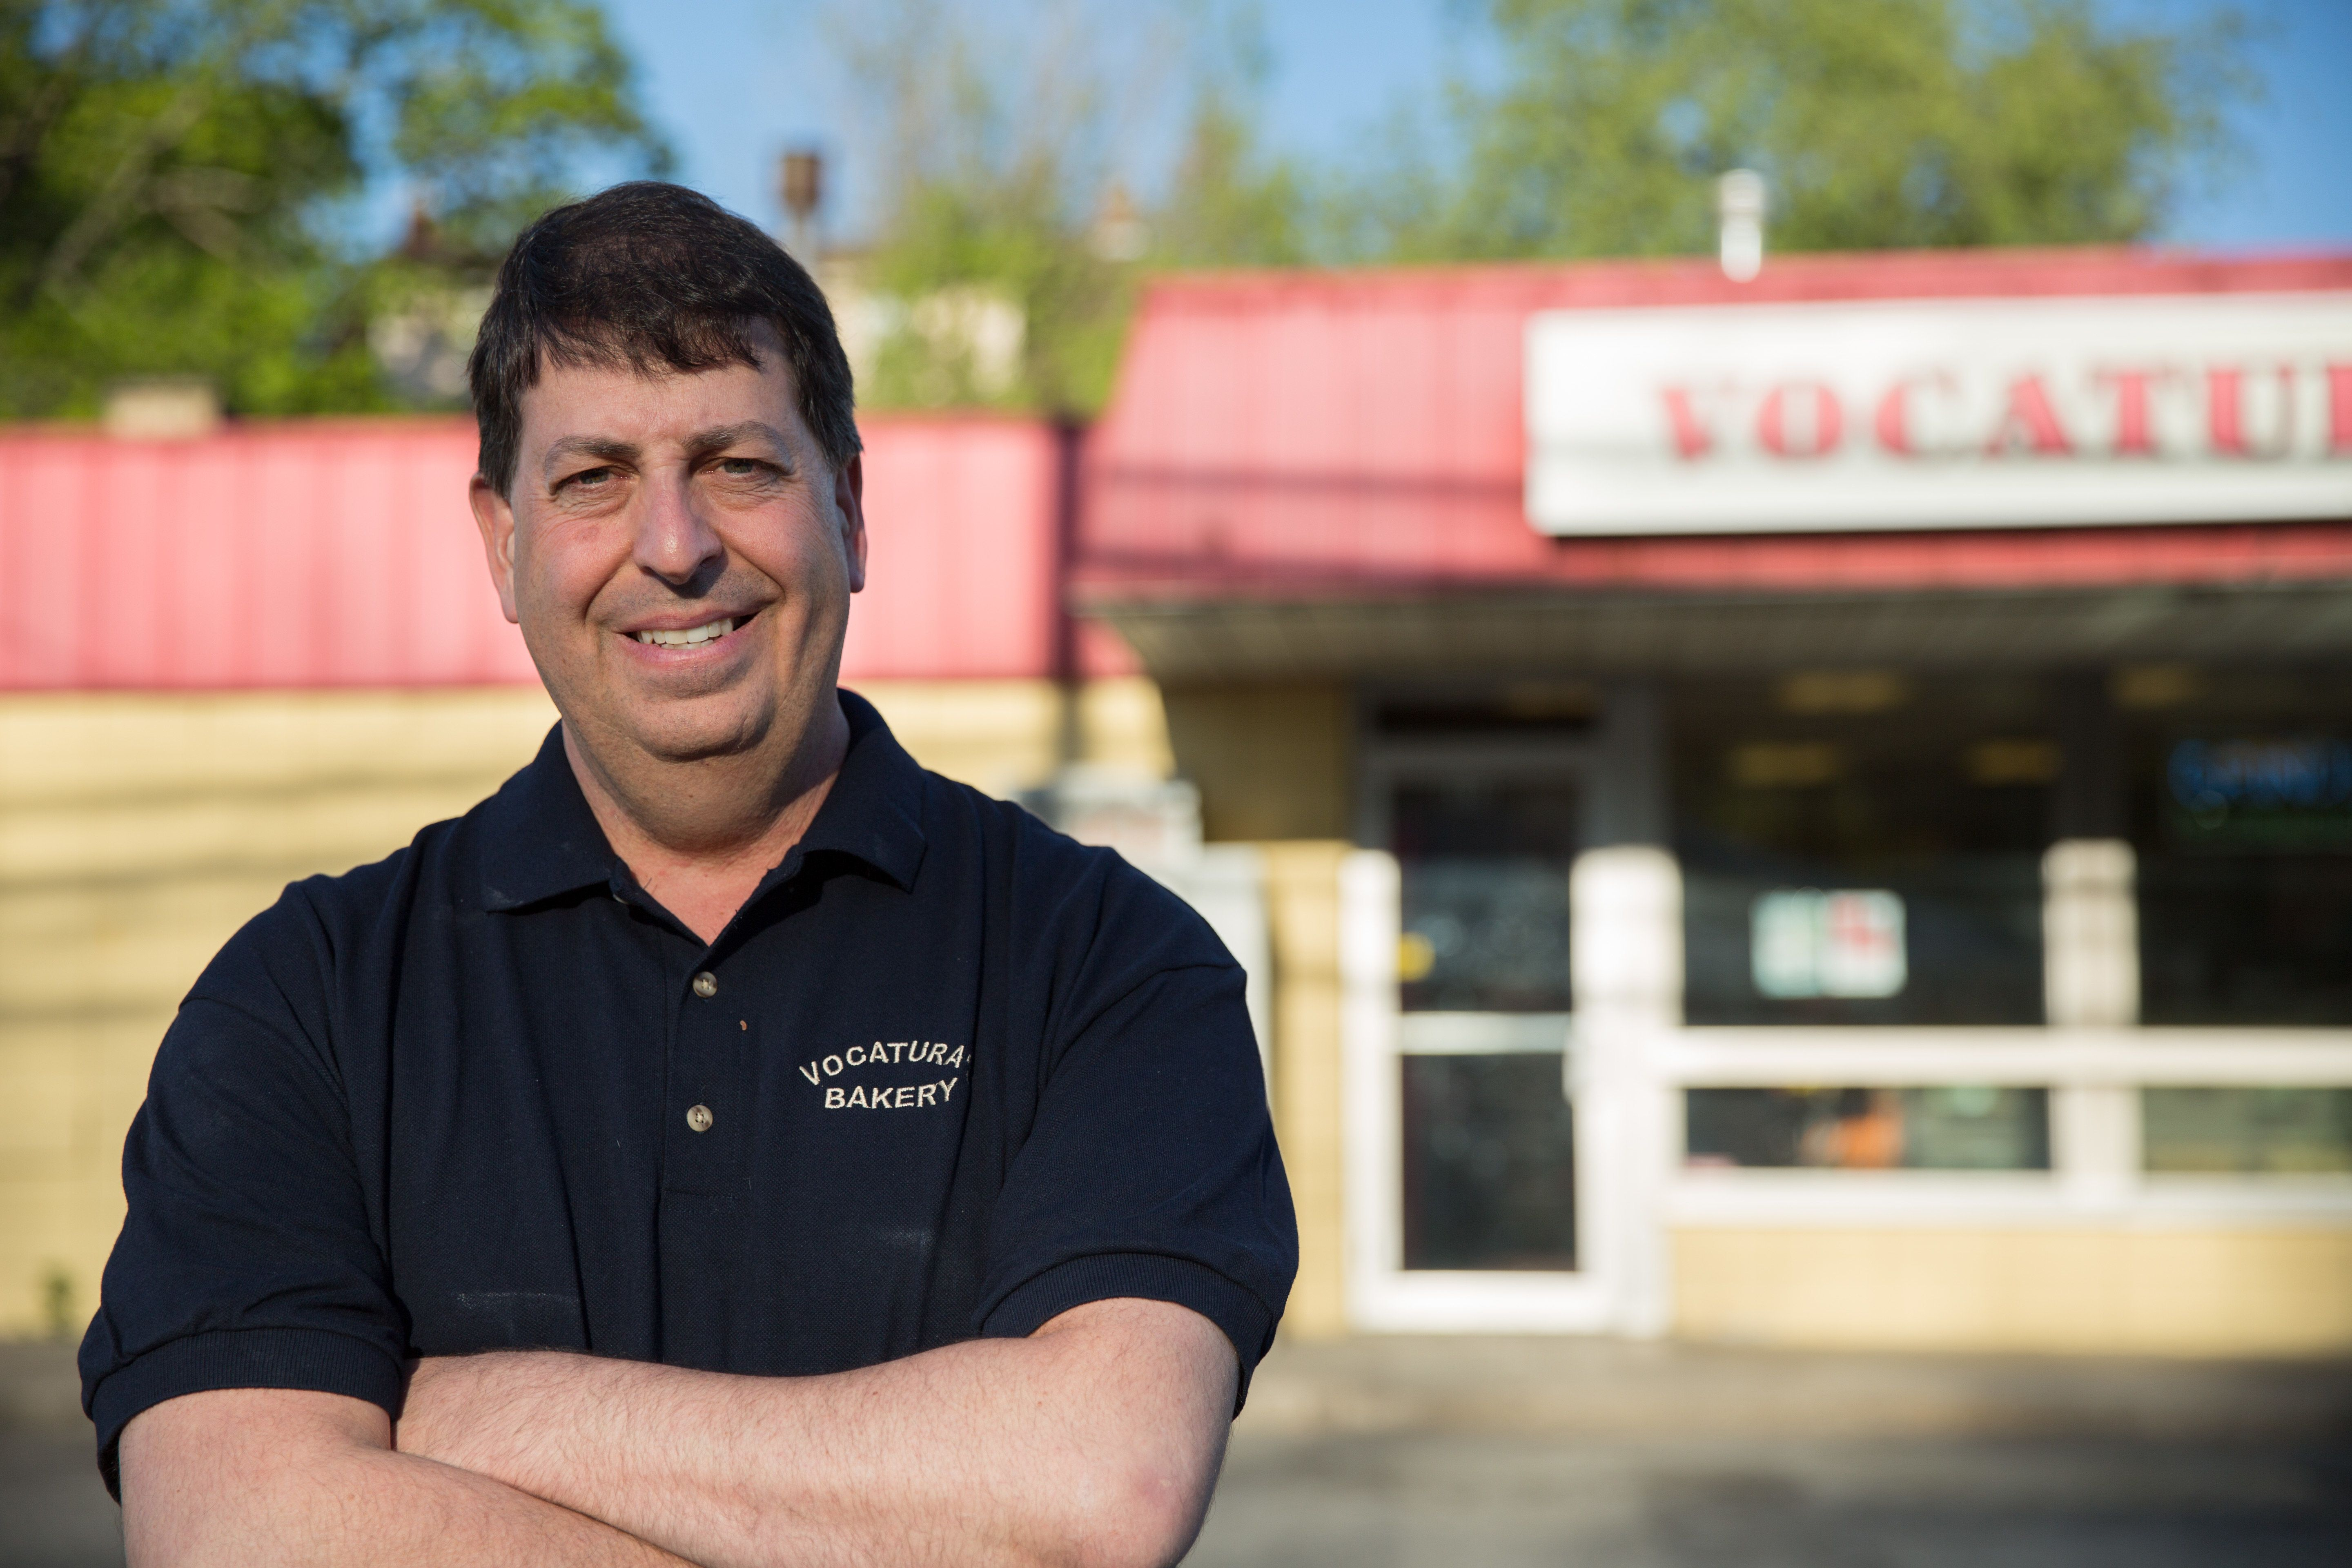 David Vocatura stands in front of his family business, Vocatura's Bakery. For over three years, he fought with the&